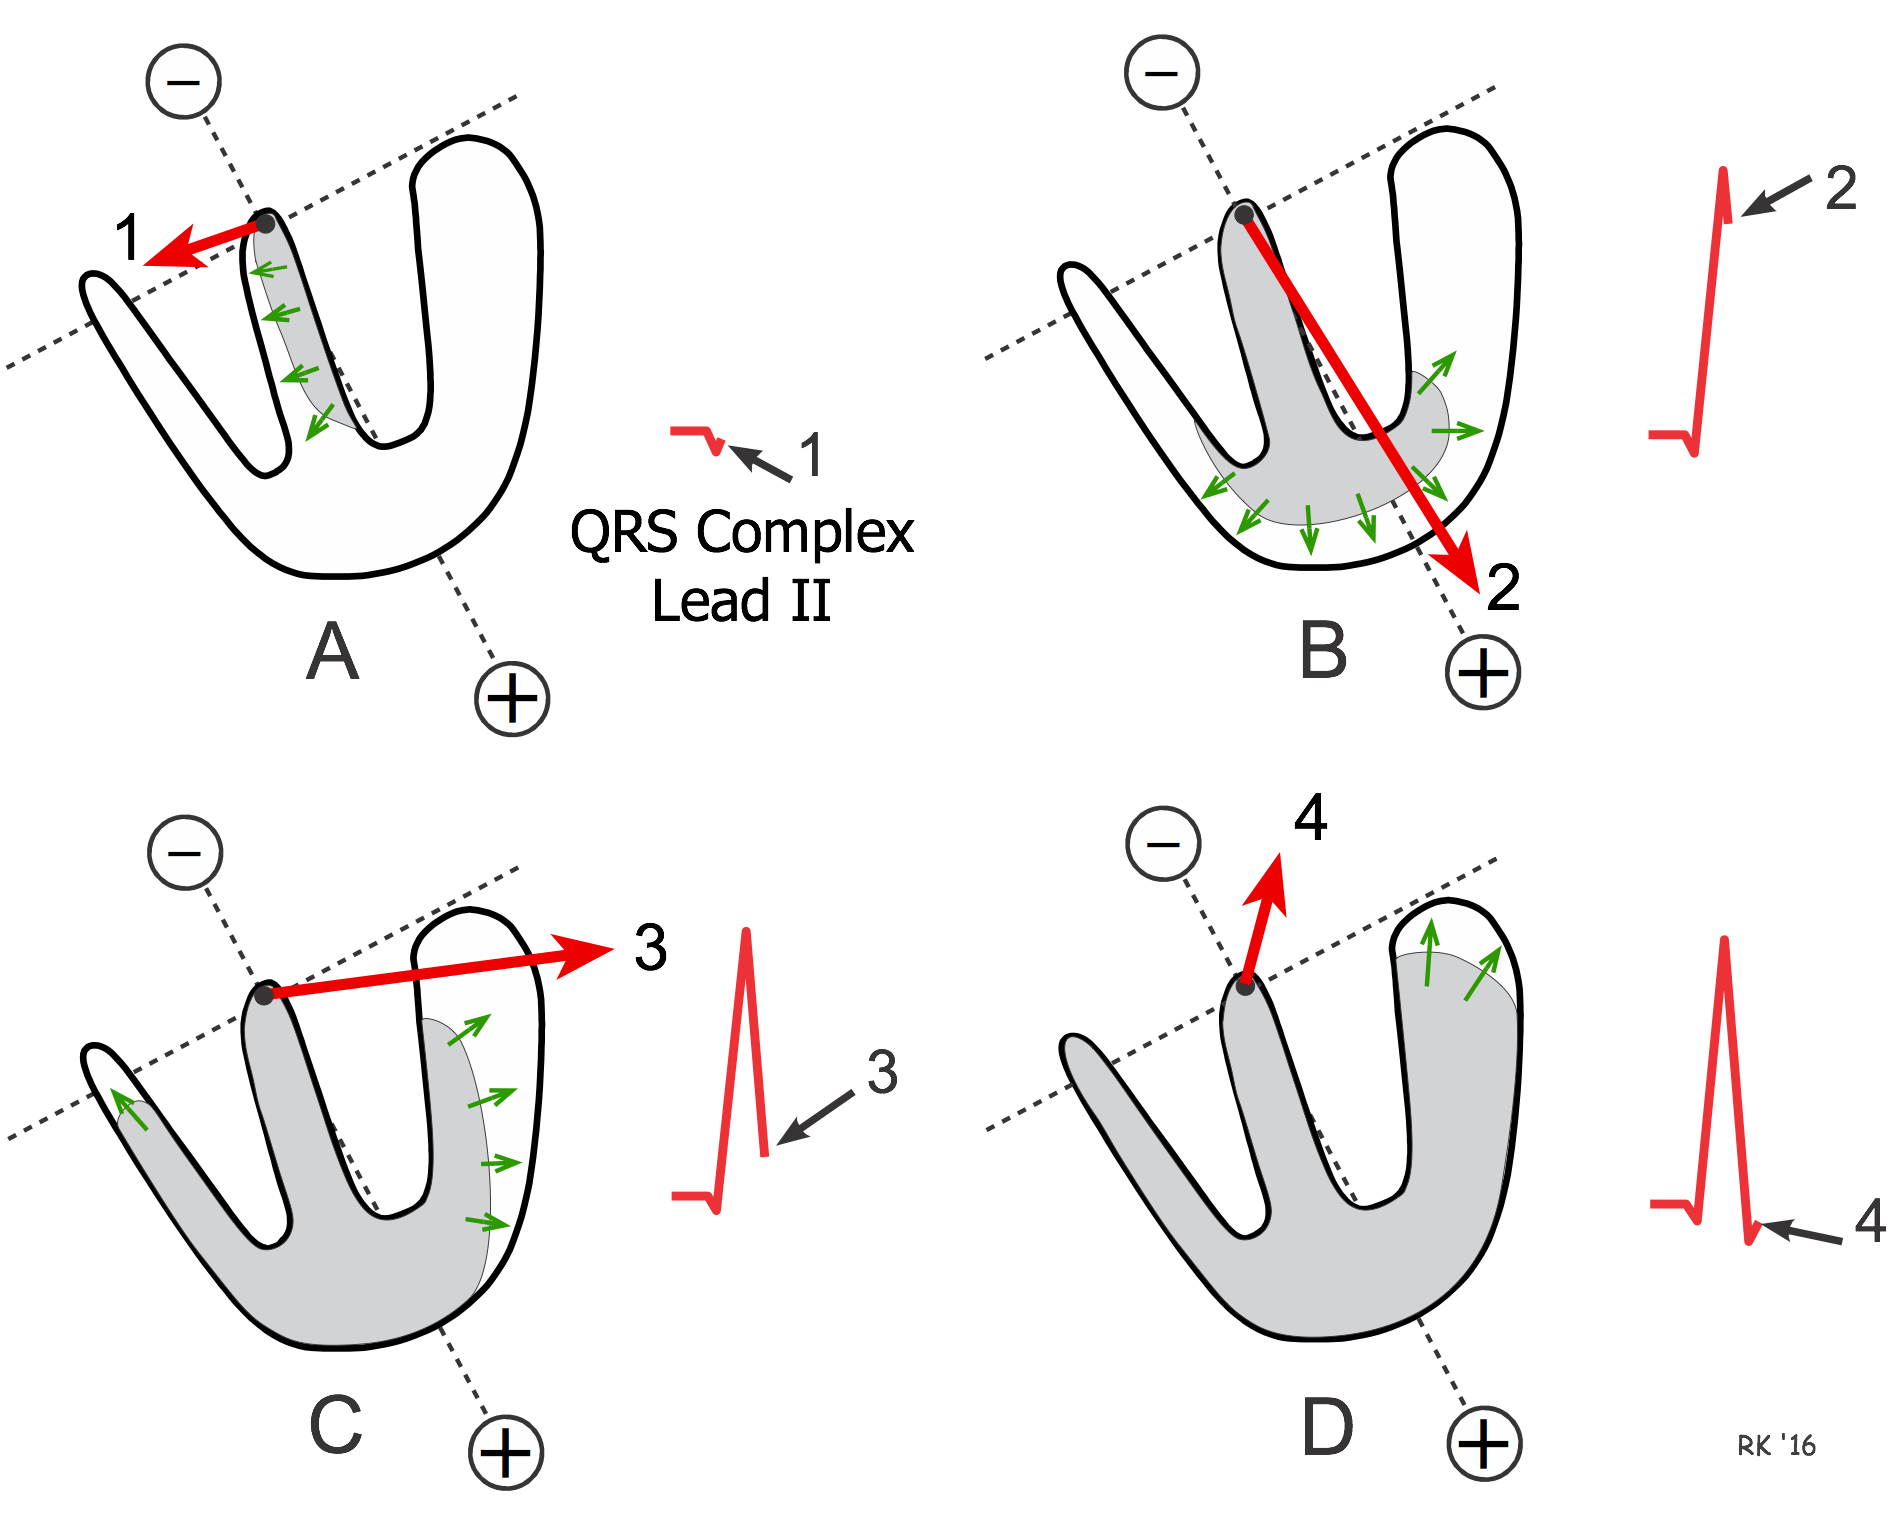 Cv Physiology Ventricular Depolarization And The Mean Electrical Axis